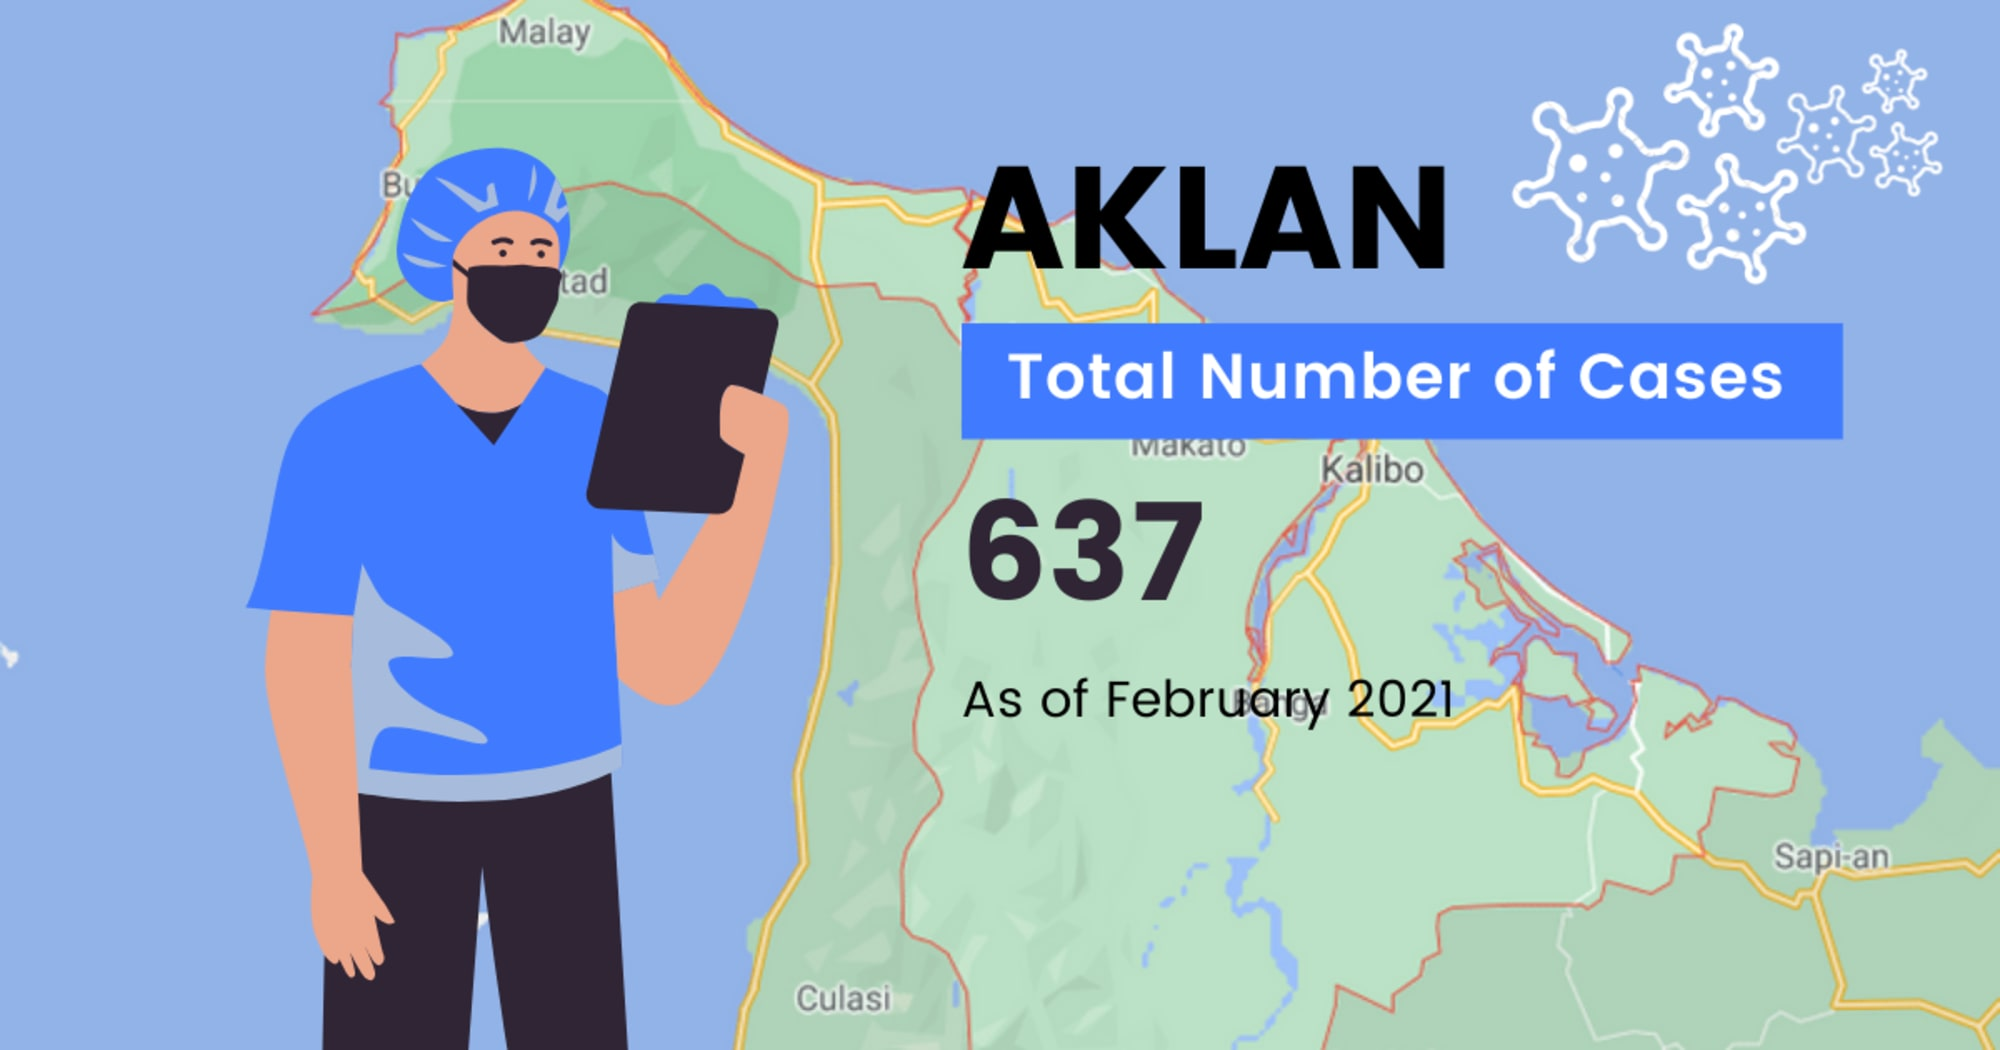 9 NEW COVID-19 confirmed case reported just this weekend - Aklan